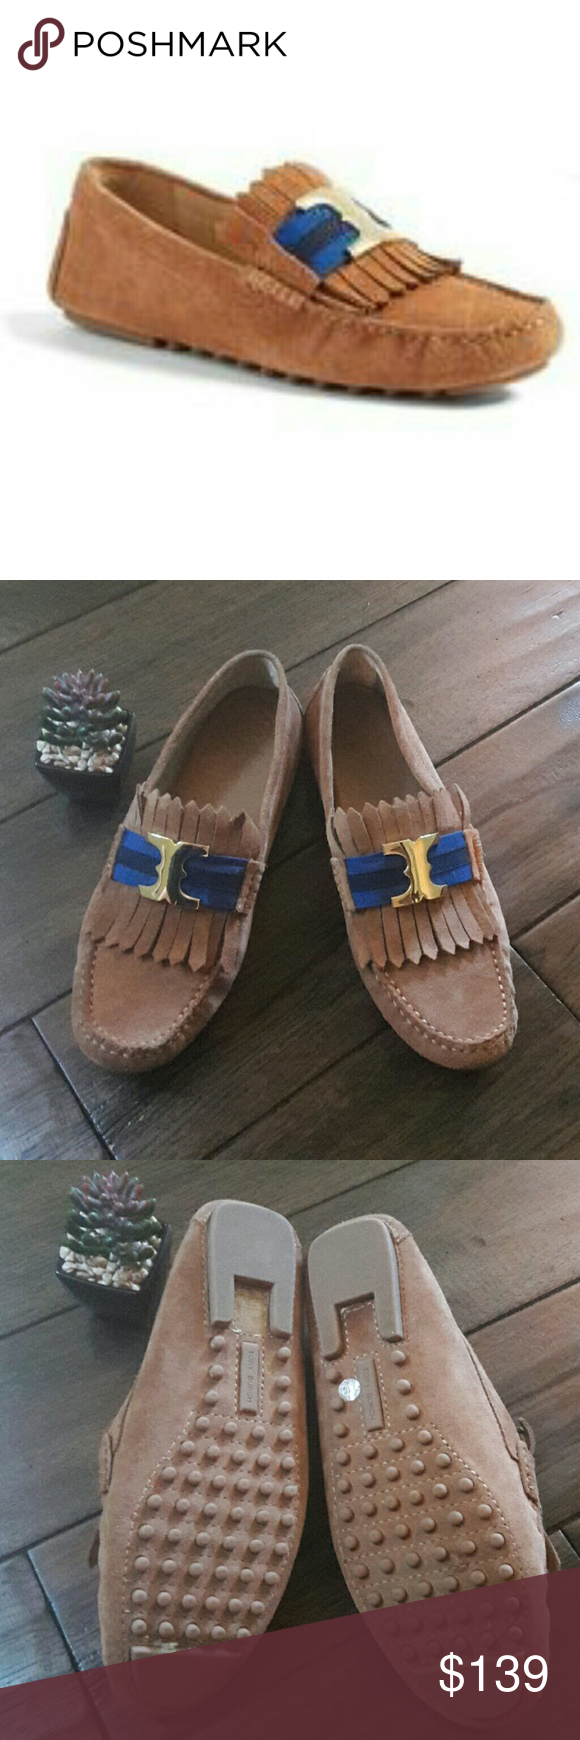 3e6a10ec7e7c GUC Tory Burch Slides Beautiful Tory Burch Gemini Link Suede Link Kiltie  drivers with fringe vamp. Visit